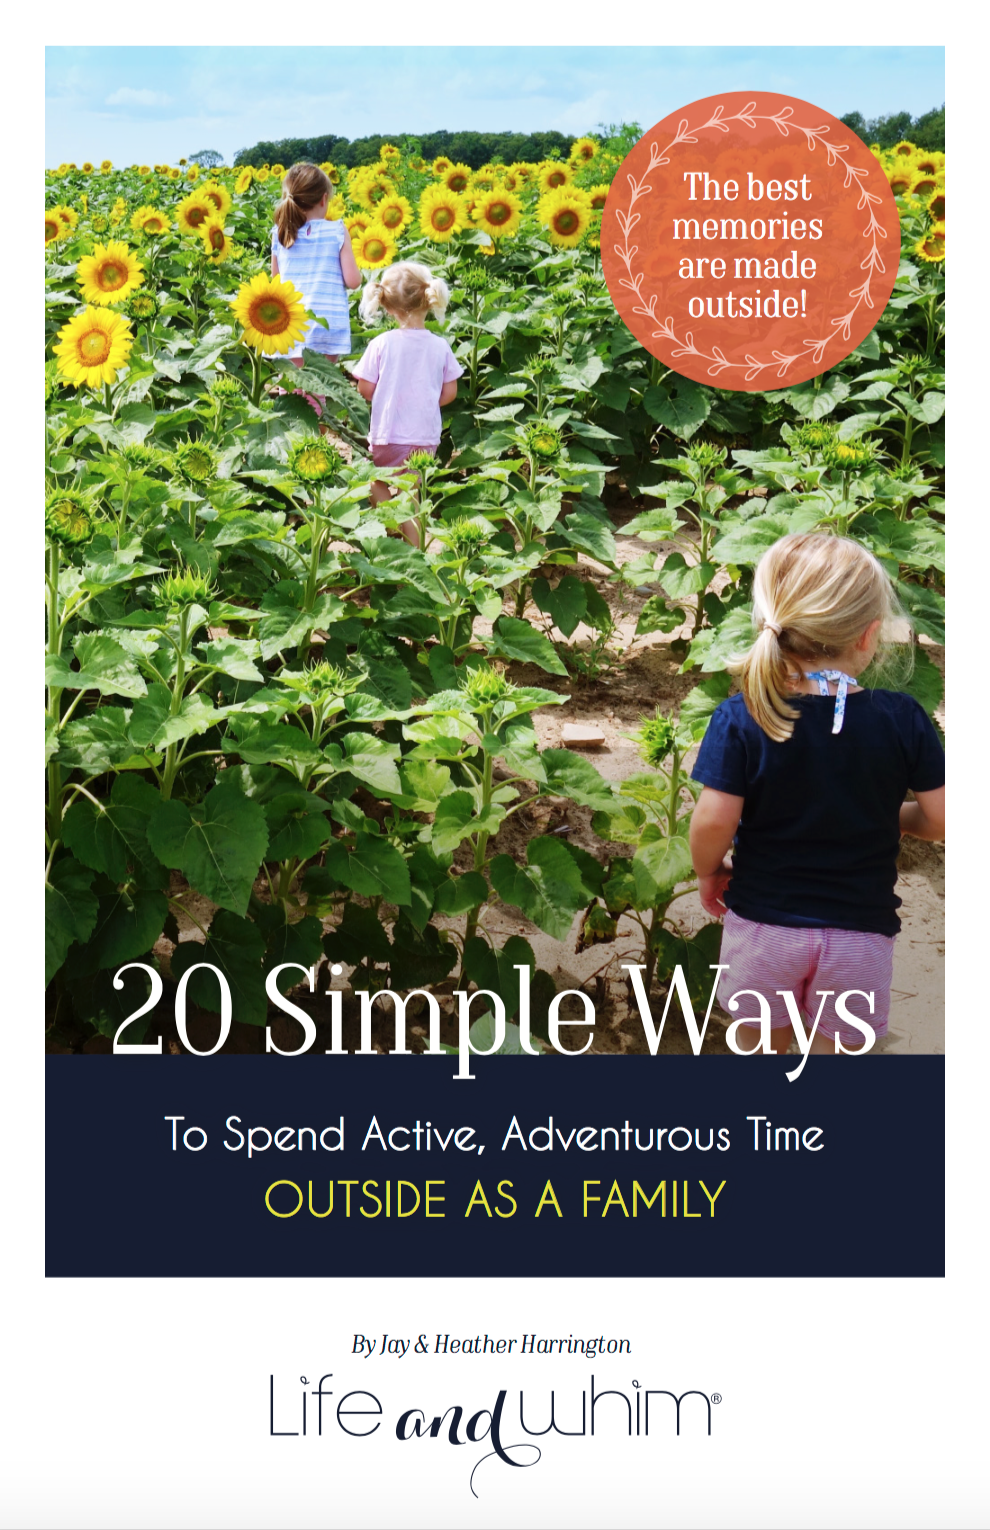 Lifeandwhim-20familyfunideas-outdoors-moments.png